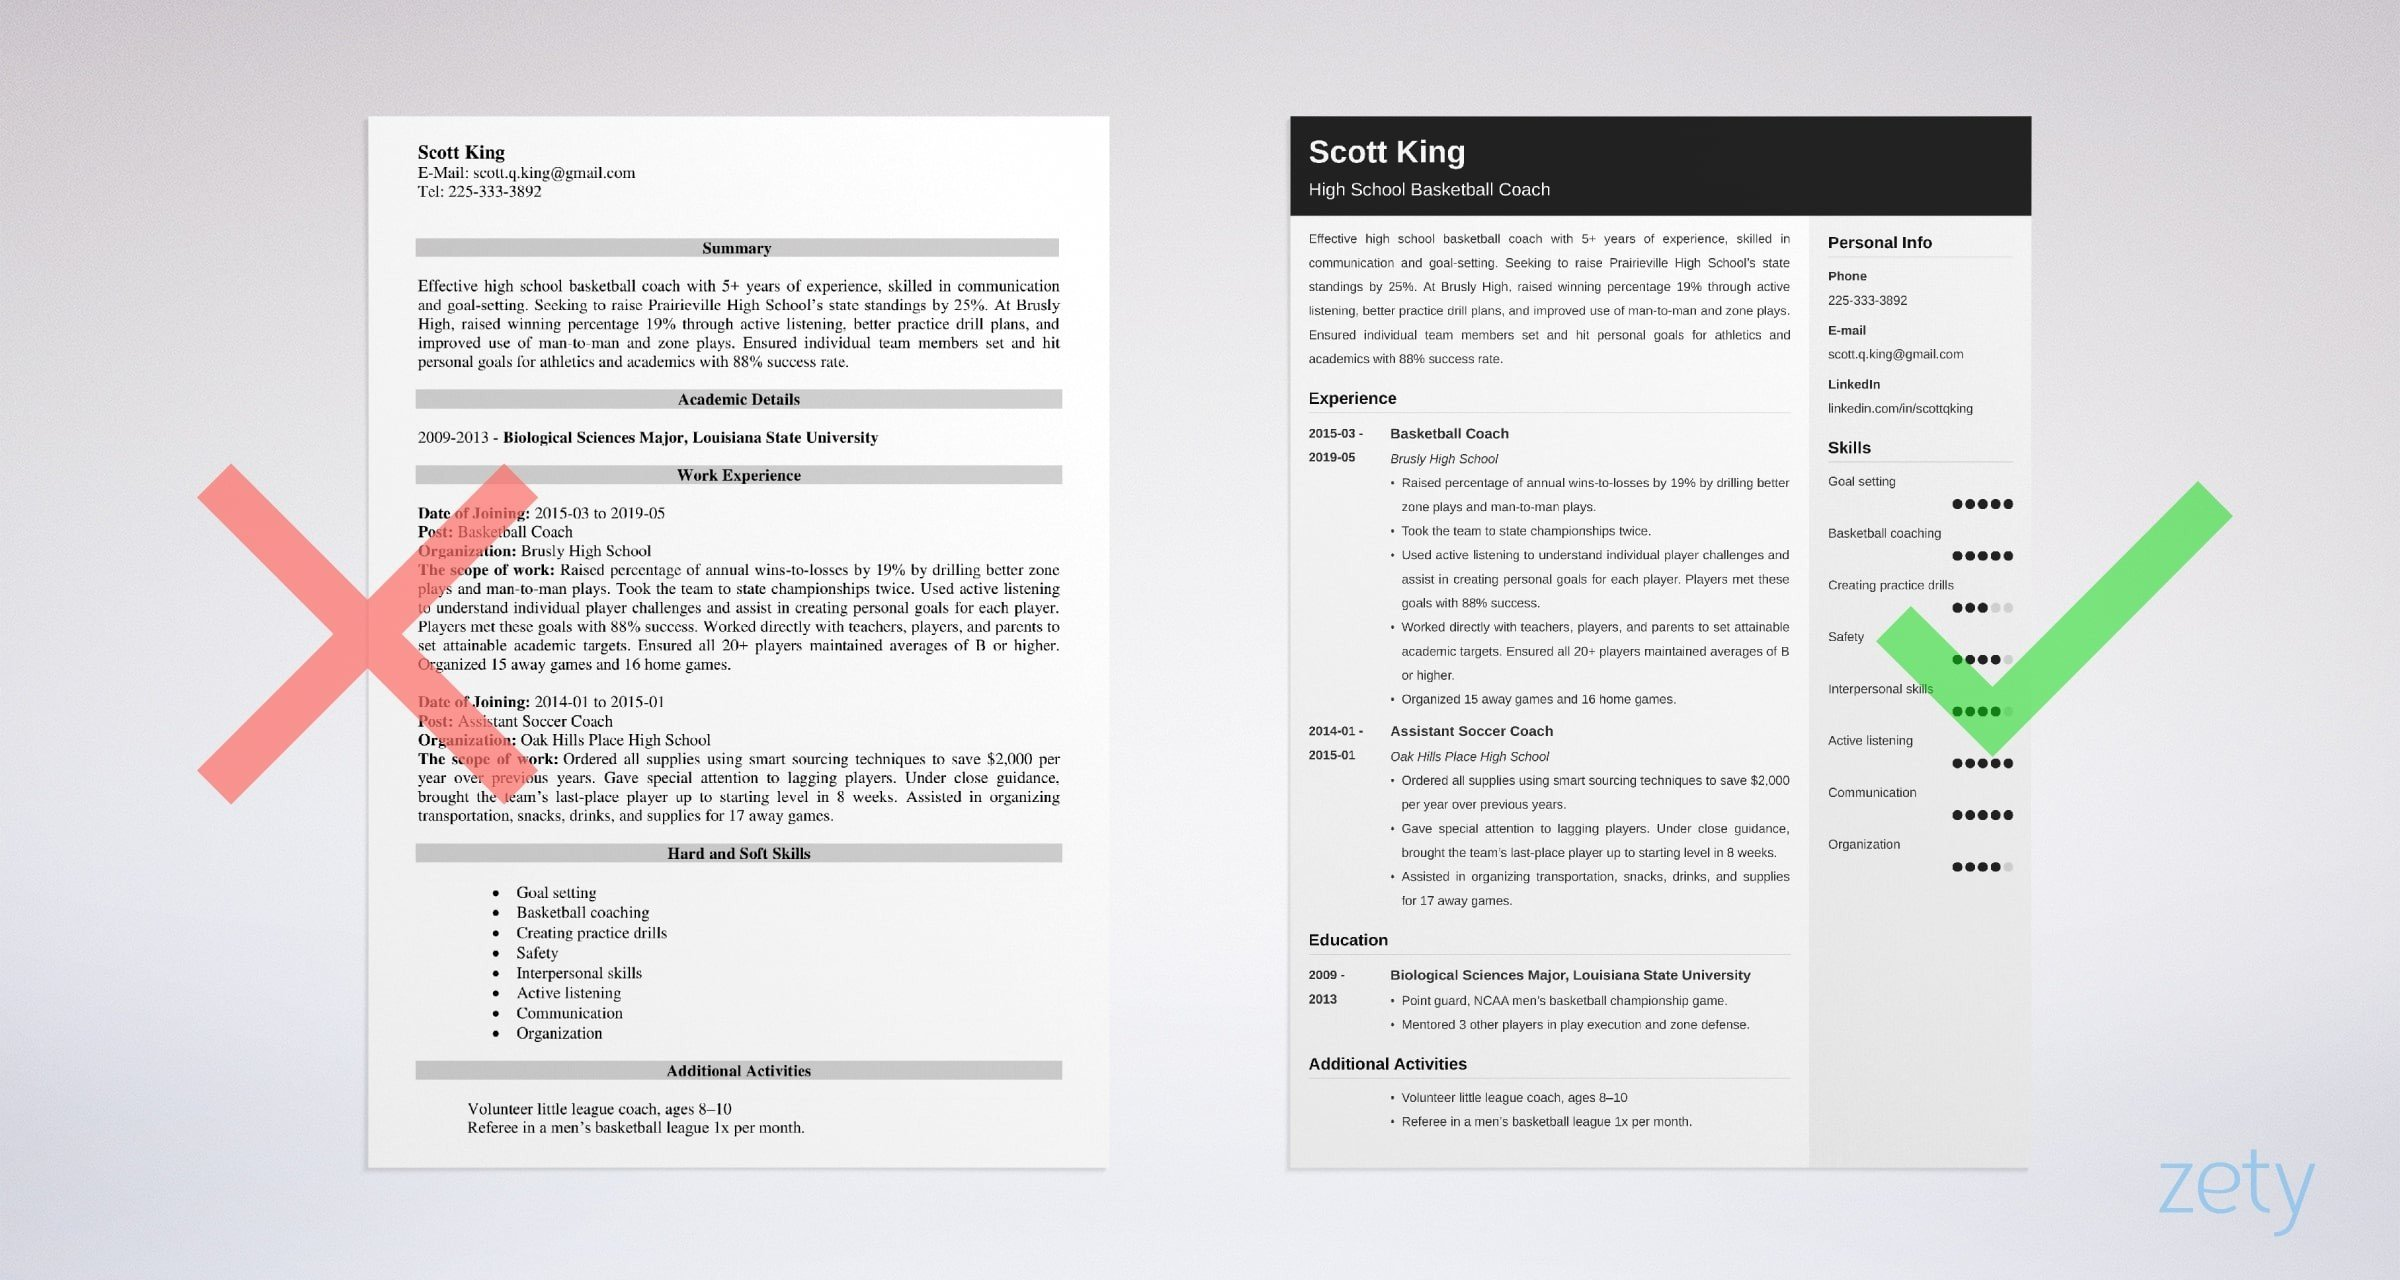 coaching resume samples also for high school coach jobs softball sample example Resume Softball Coach Resume Sample